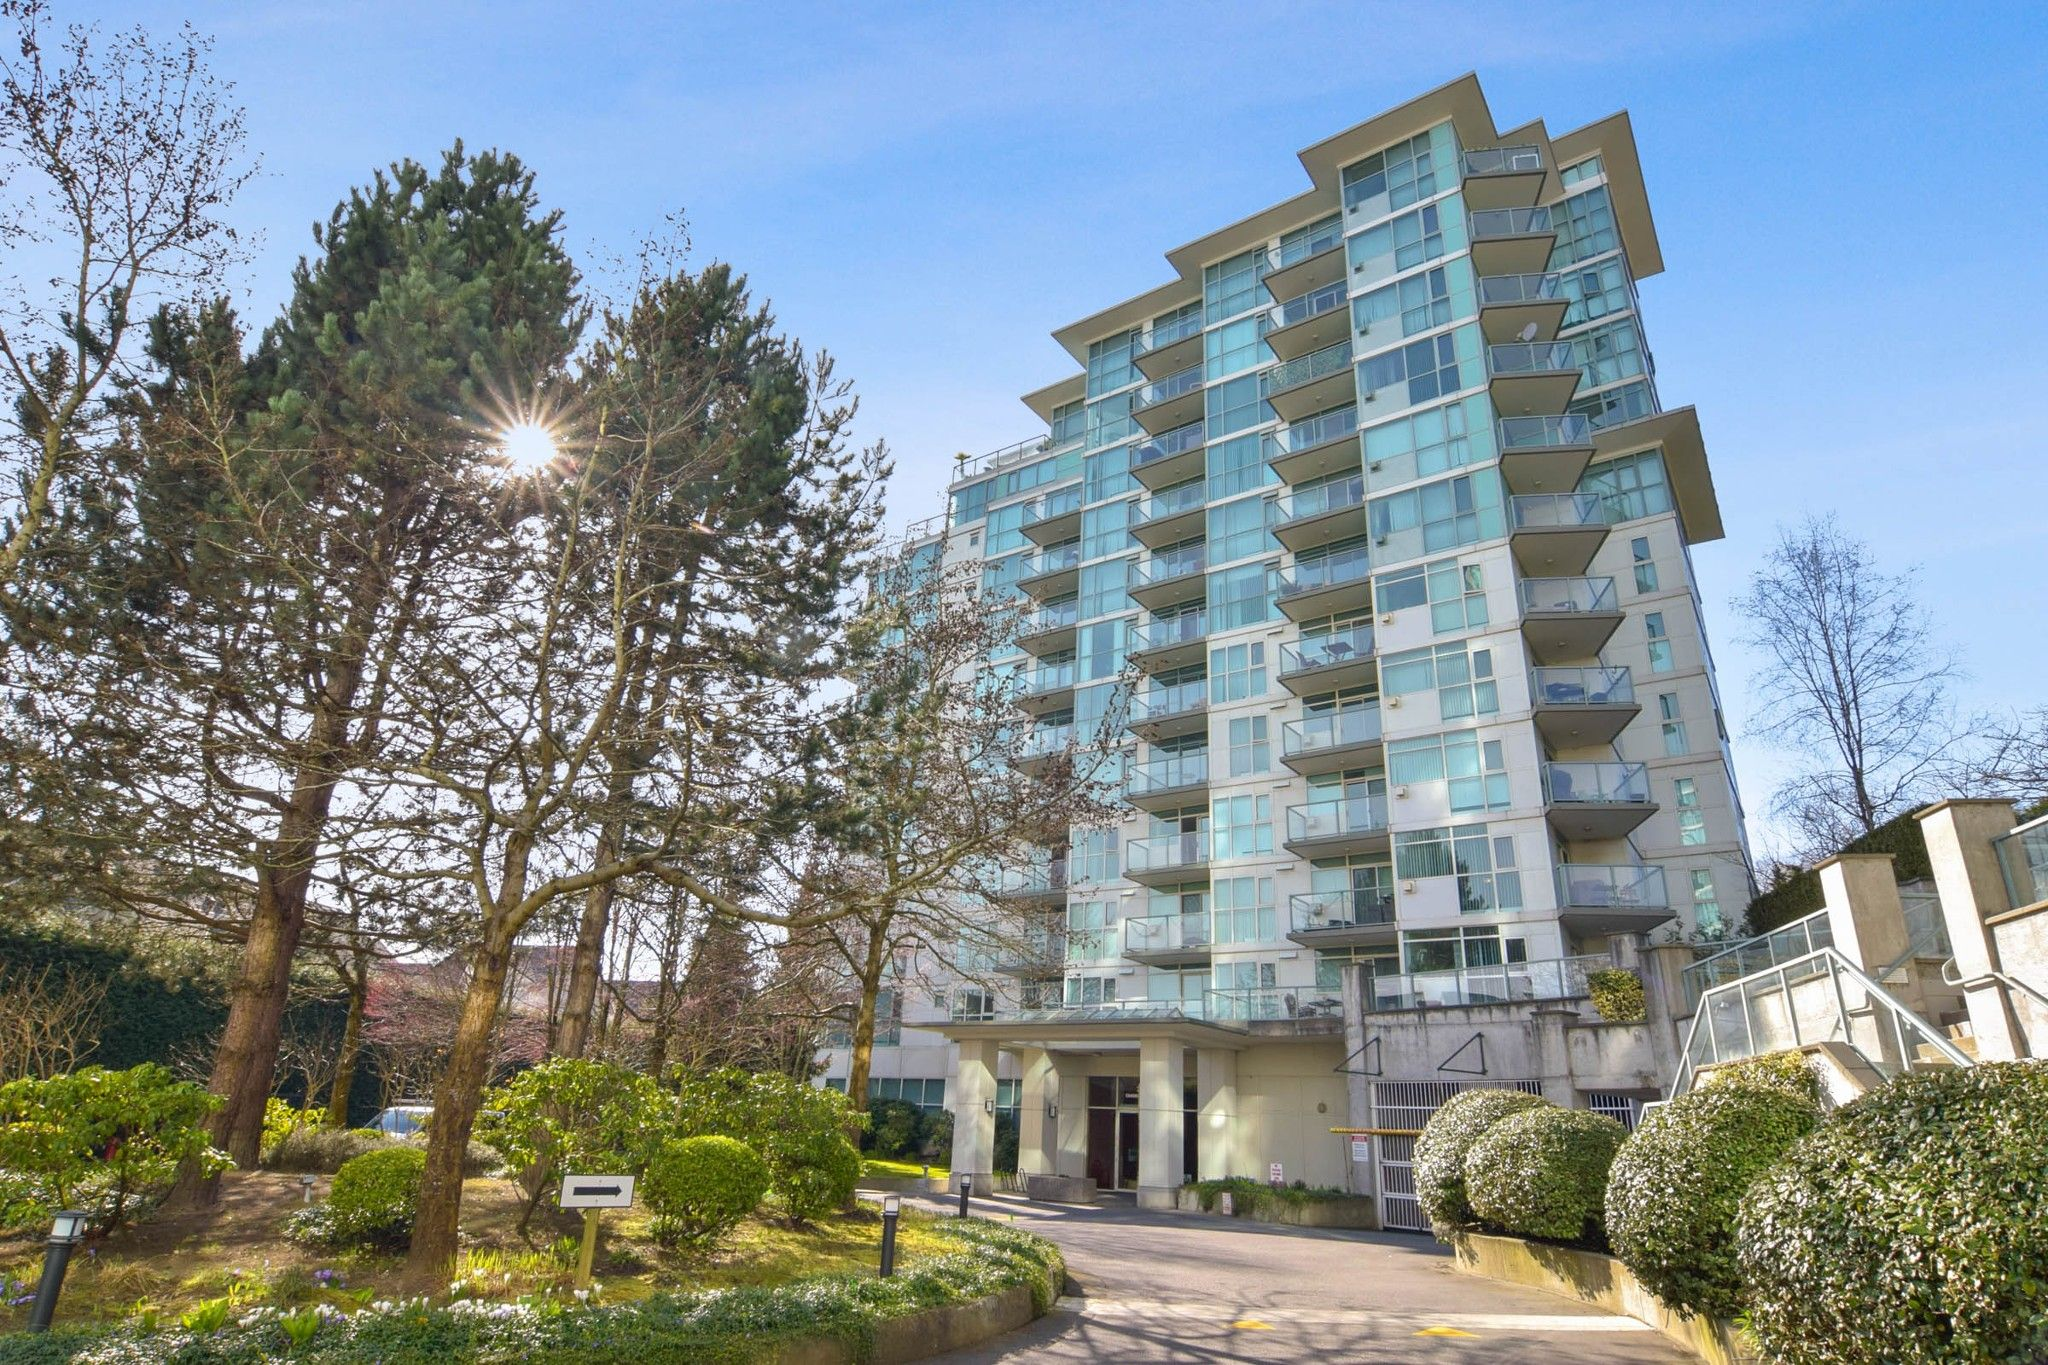 """Main Photo: 710 2733 CHANDLERY Place in Vancouver: South Marine Condo for sale in """"River Dance"""" (Vancouver East)  : MLS®# R2553020"""